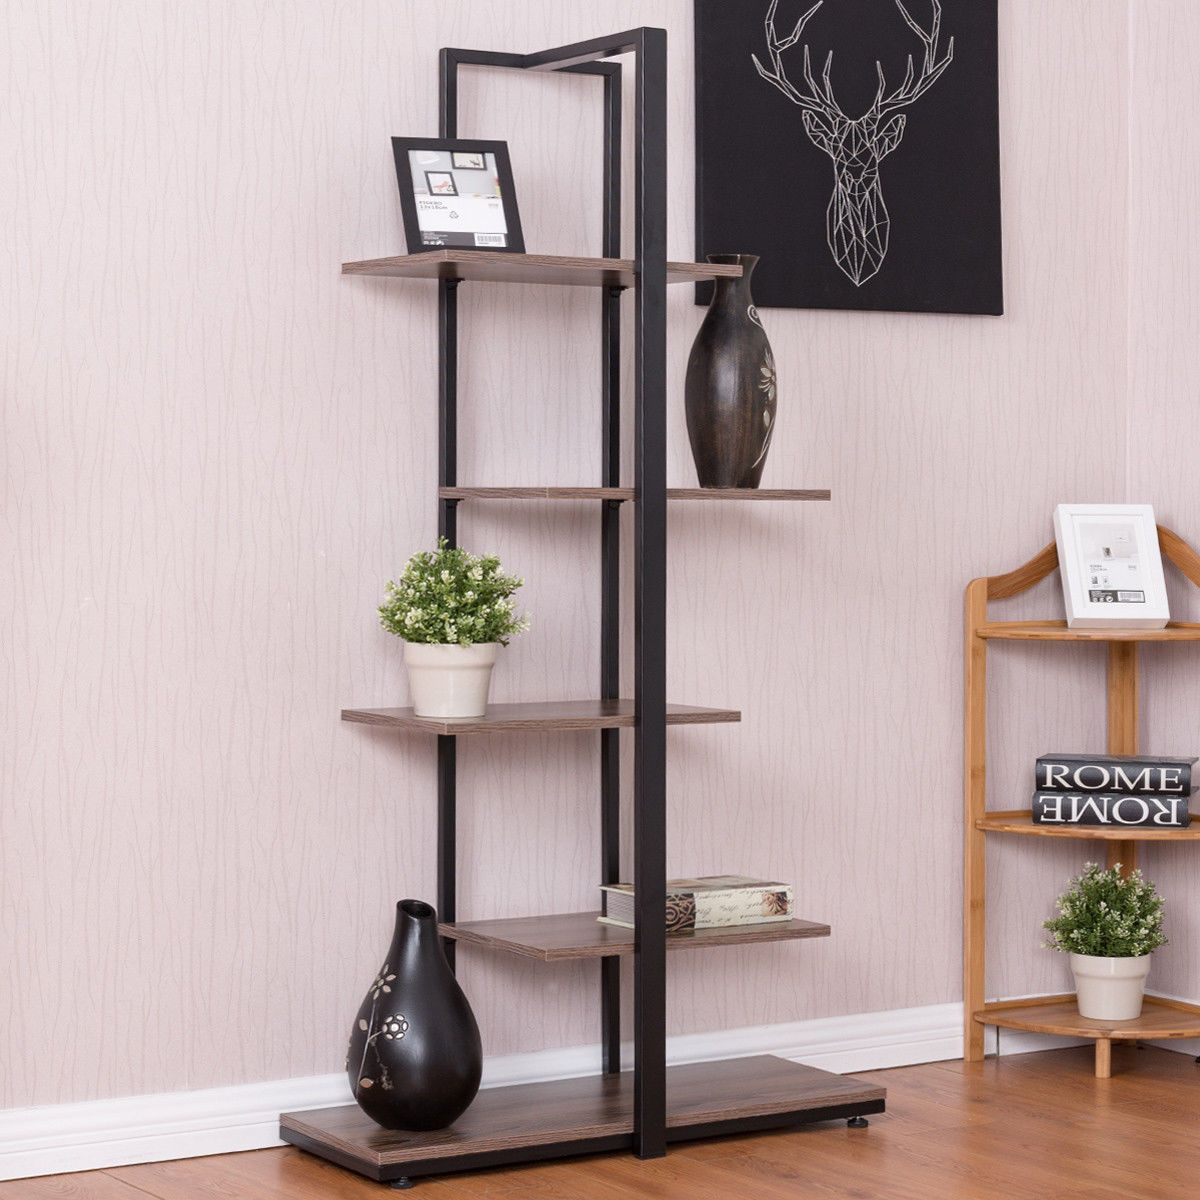 bookcase 60 modern open concept display etagere display shelf rh pinterest com Modern Bookcases Bookshelves with Drawers